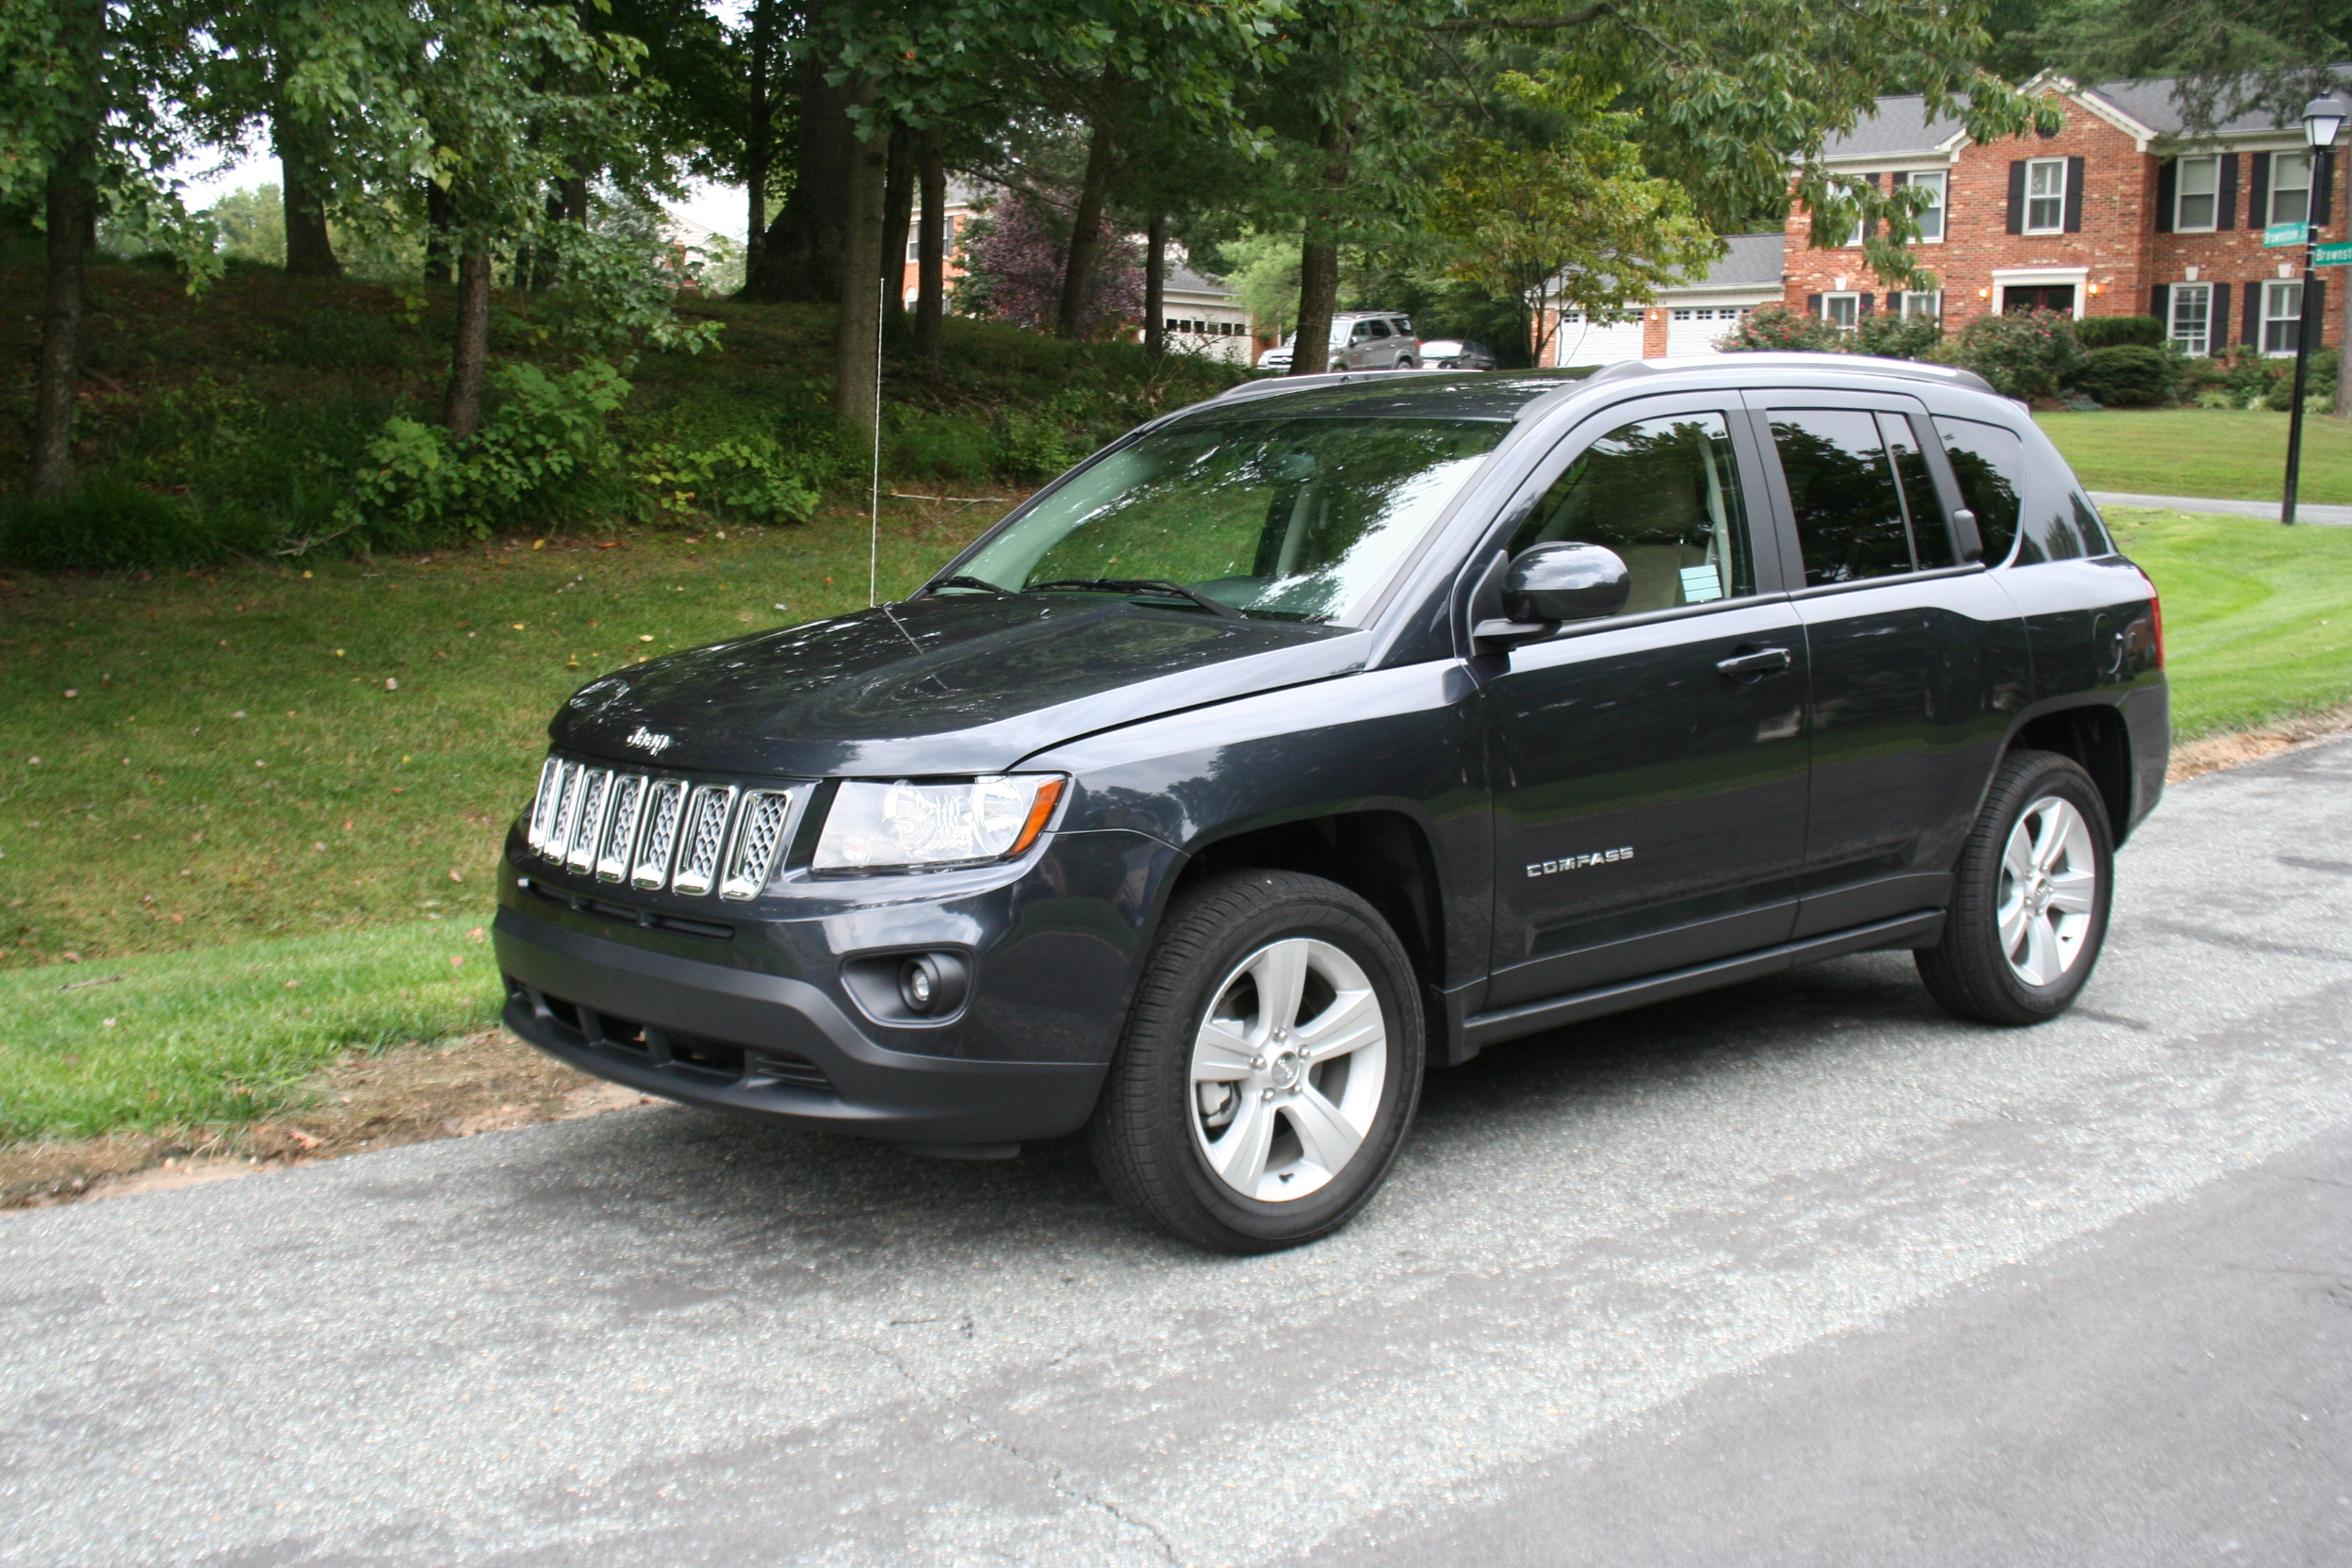 Car Report: 2014 Jeep Compass a small crossover with upscale looks